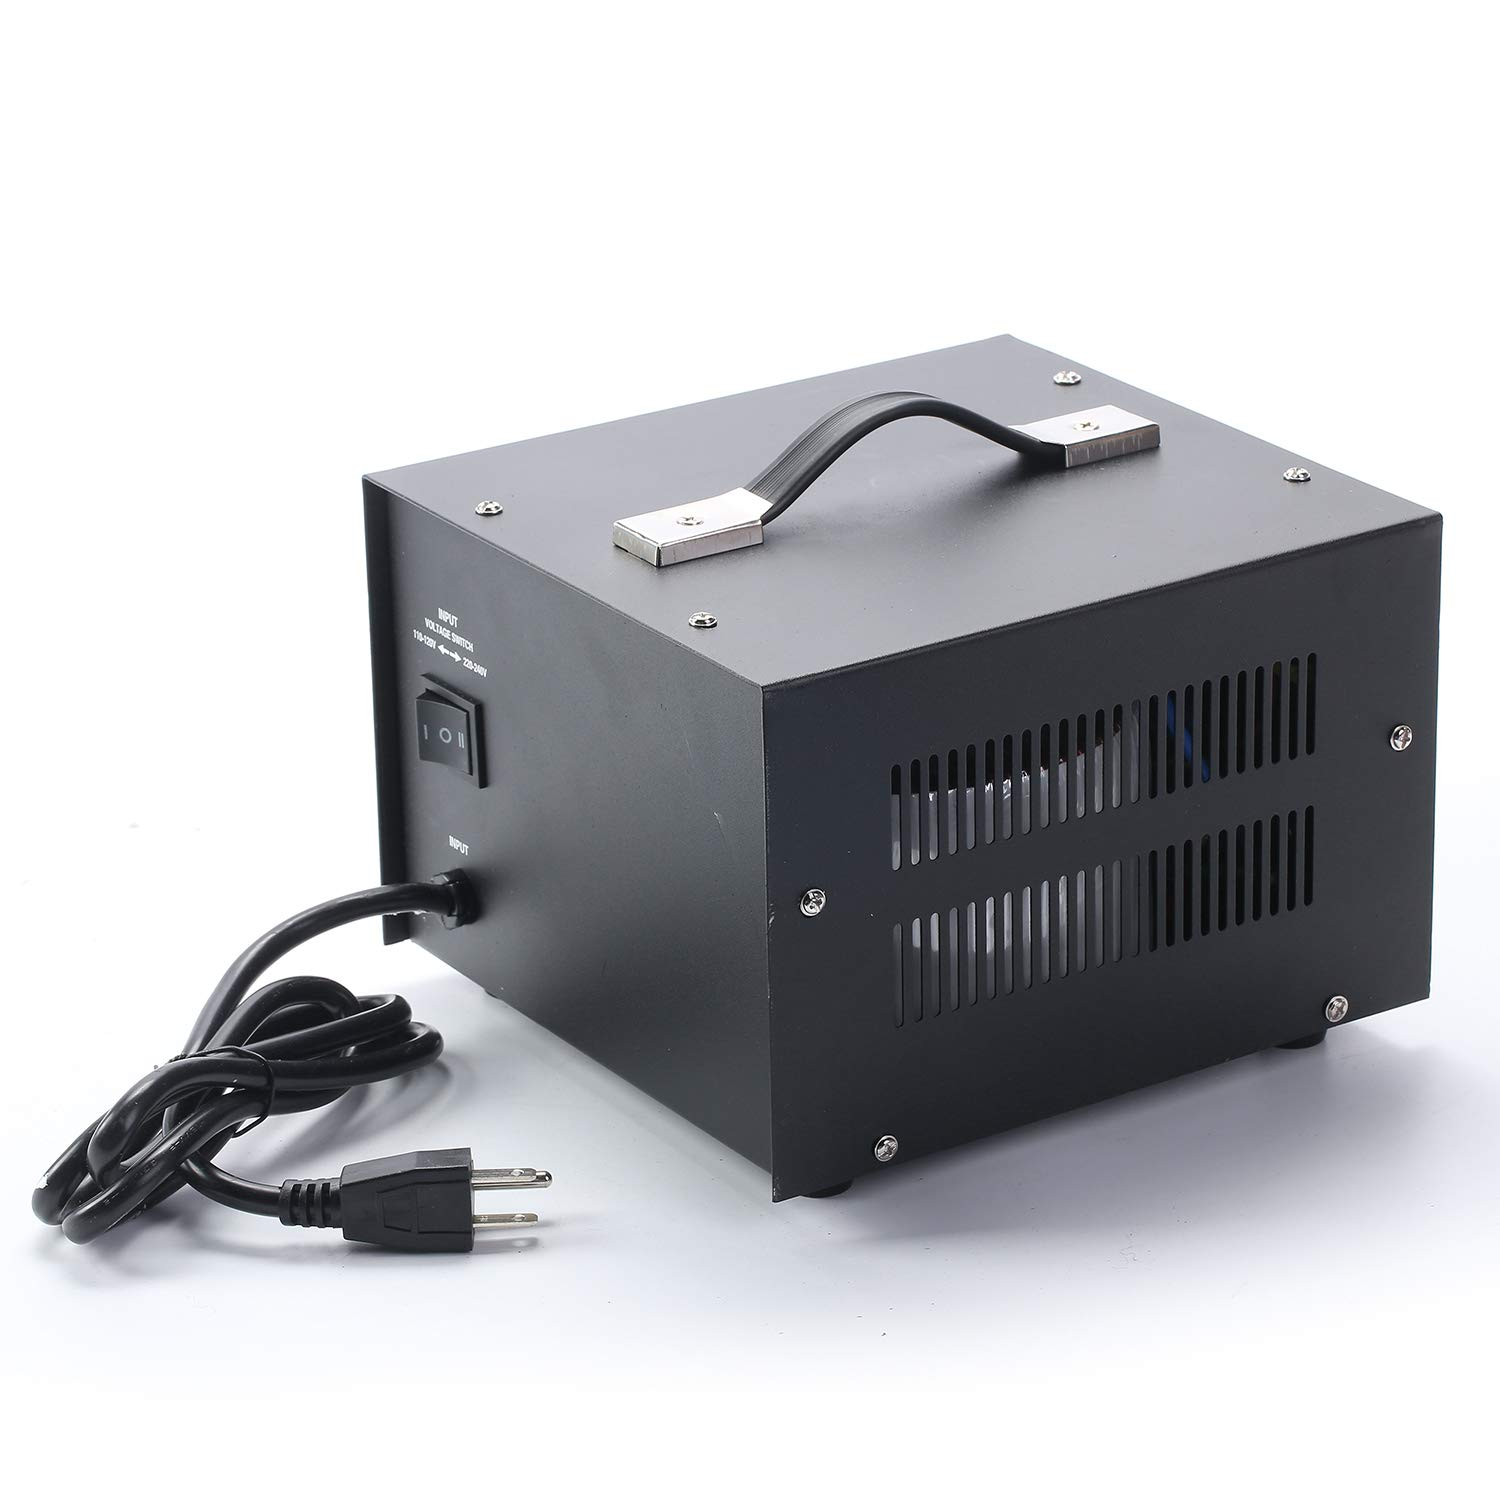 Power 3000W Voltage Converter Transformer Step Up/Down 110-220 Volt with Two 5V-USB Ports,Circuit Breaker Protection - CE Certified - AC-3000 by uyoyous (Image #8)